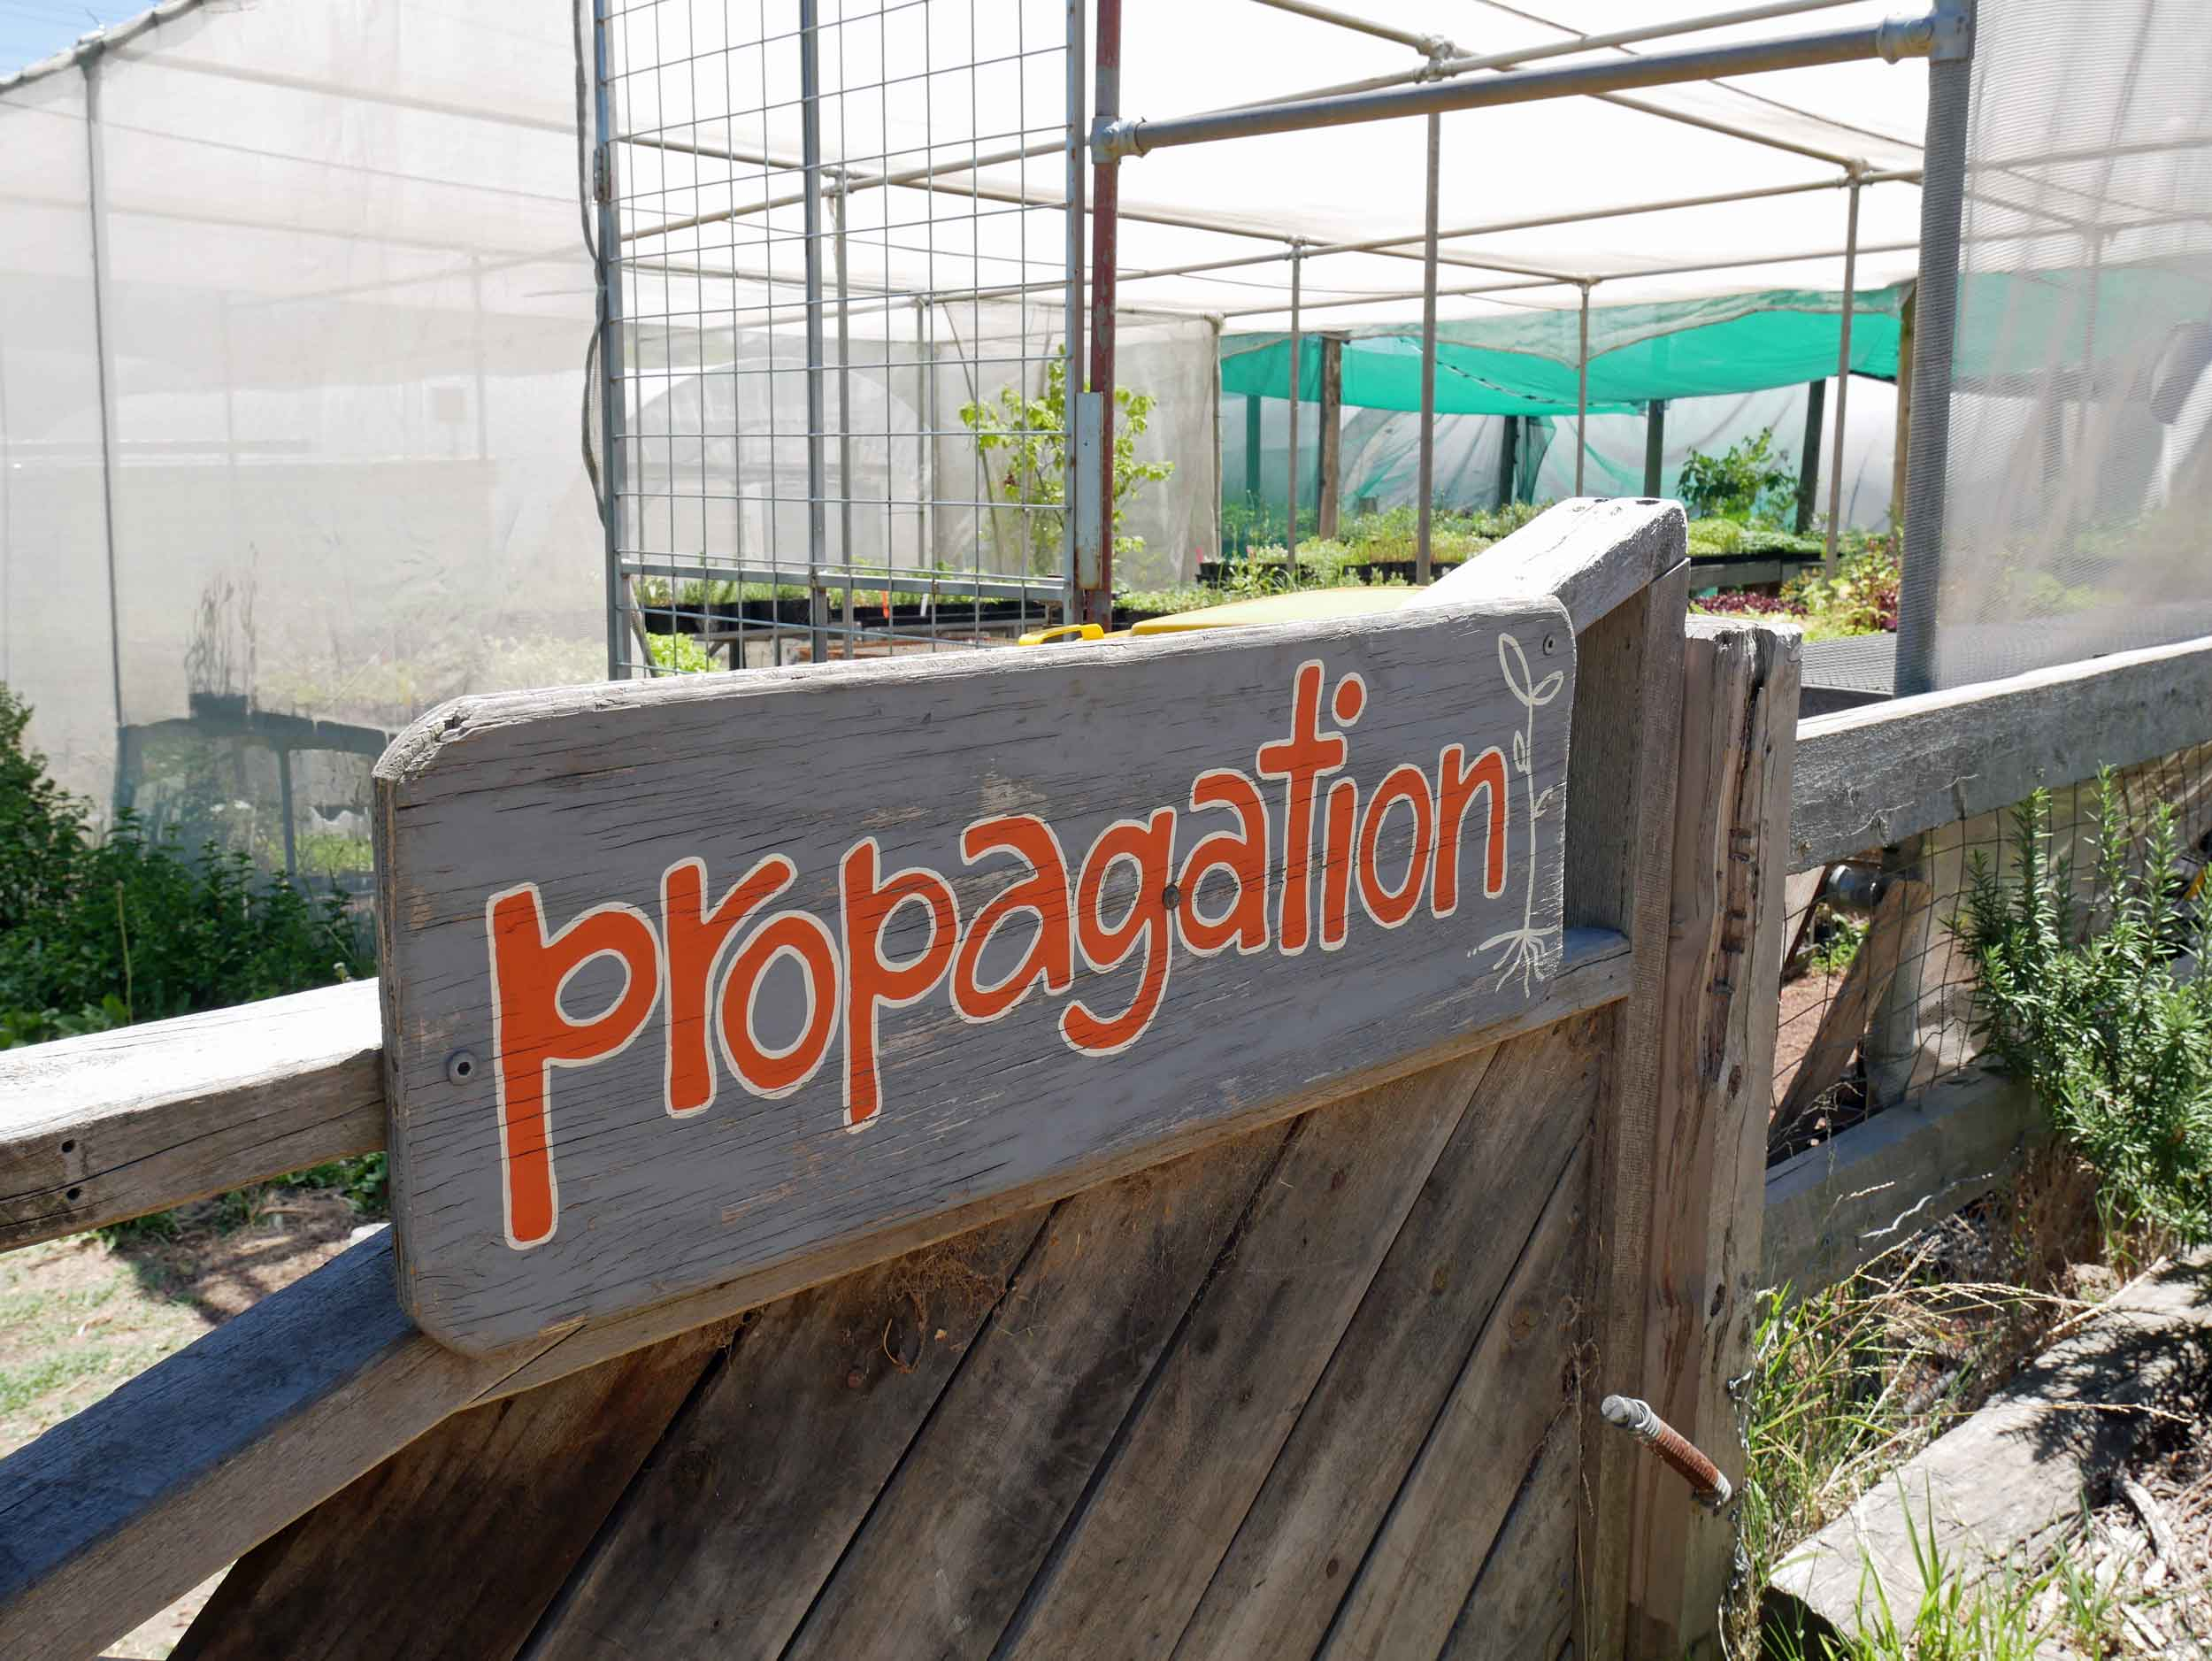 On site plant propagation is one of the many services offered by this dynamic community center - plants are for sale at the market (Jan 26).